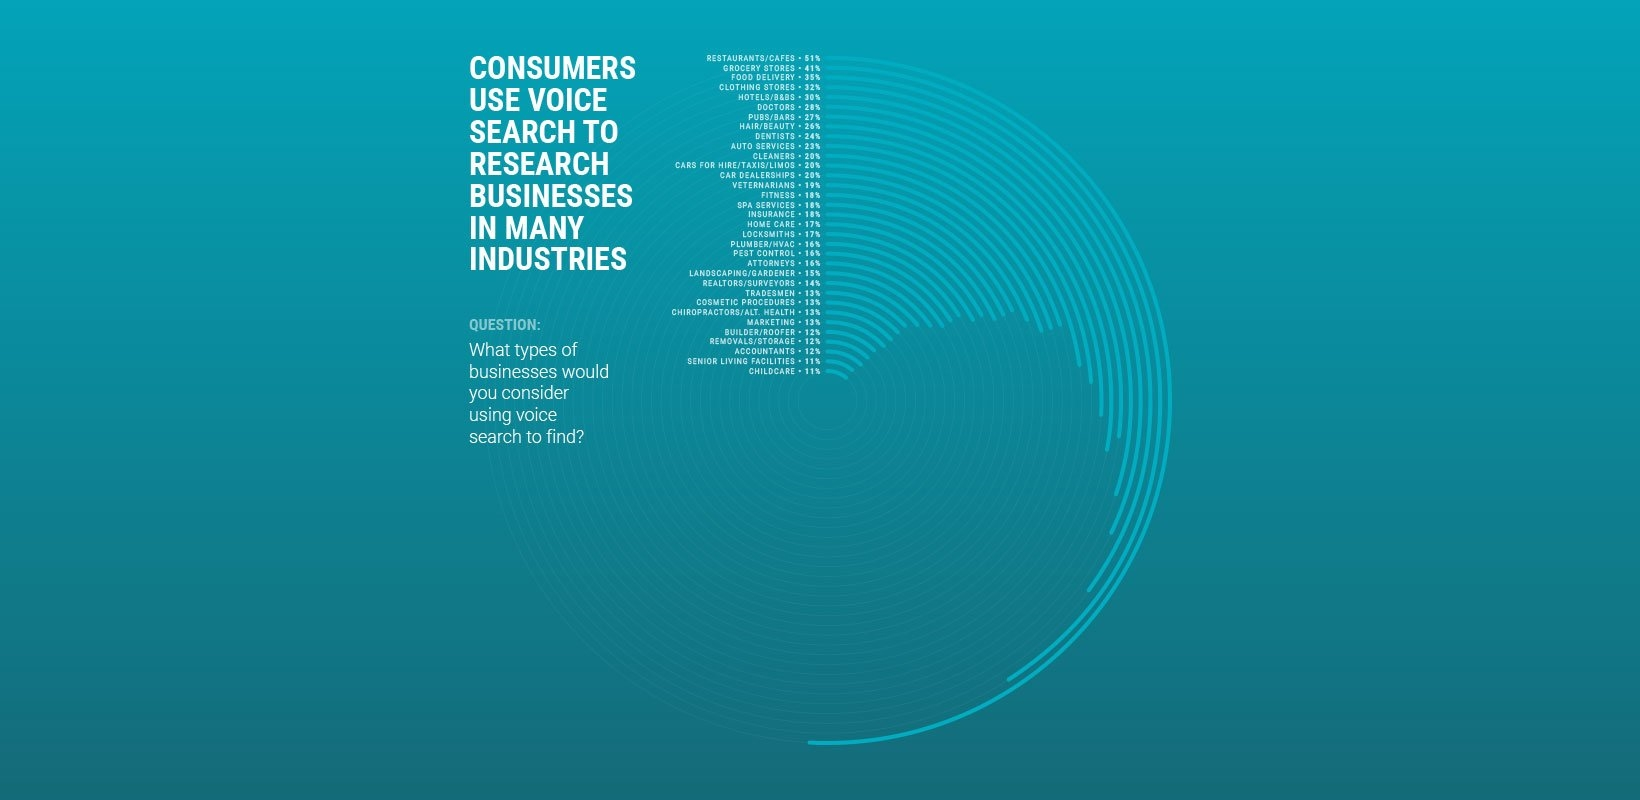 People use voice search to research businesses across industries